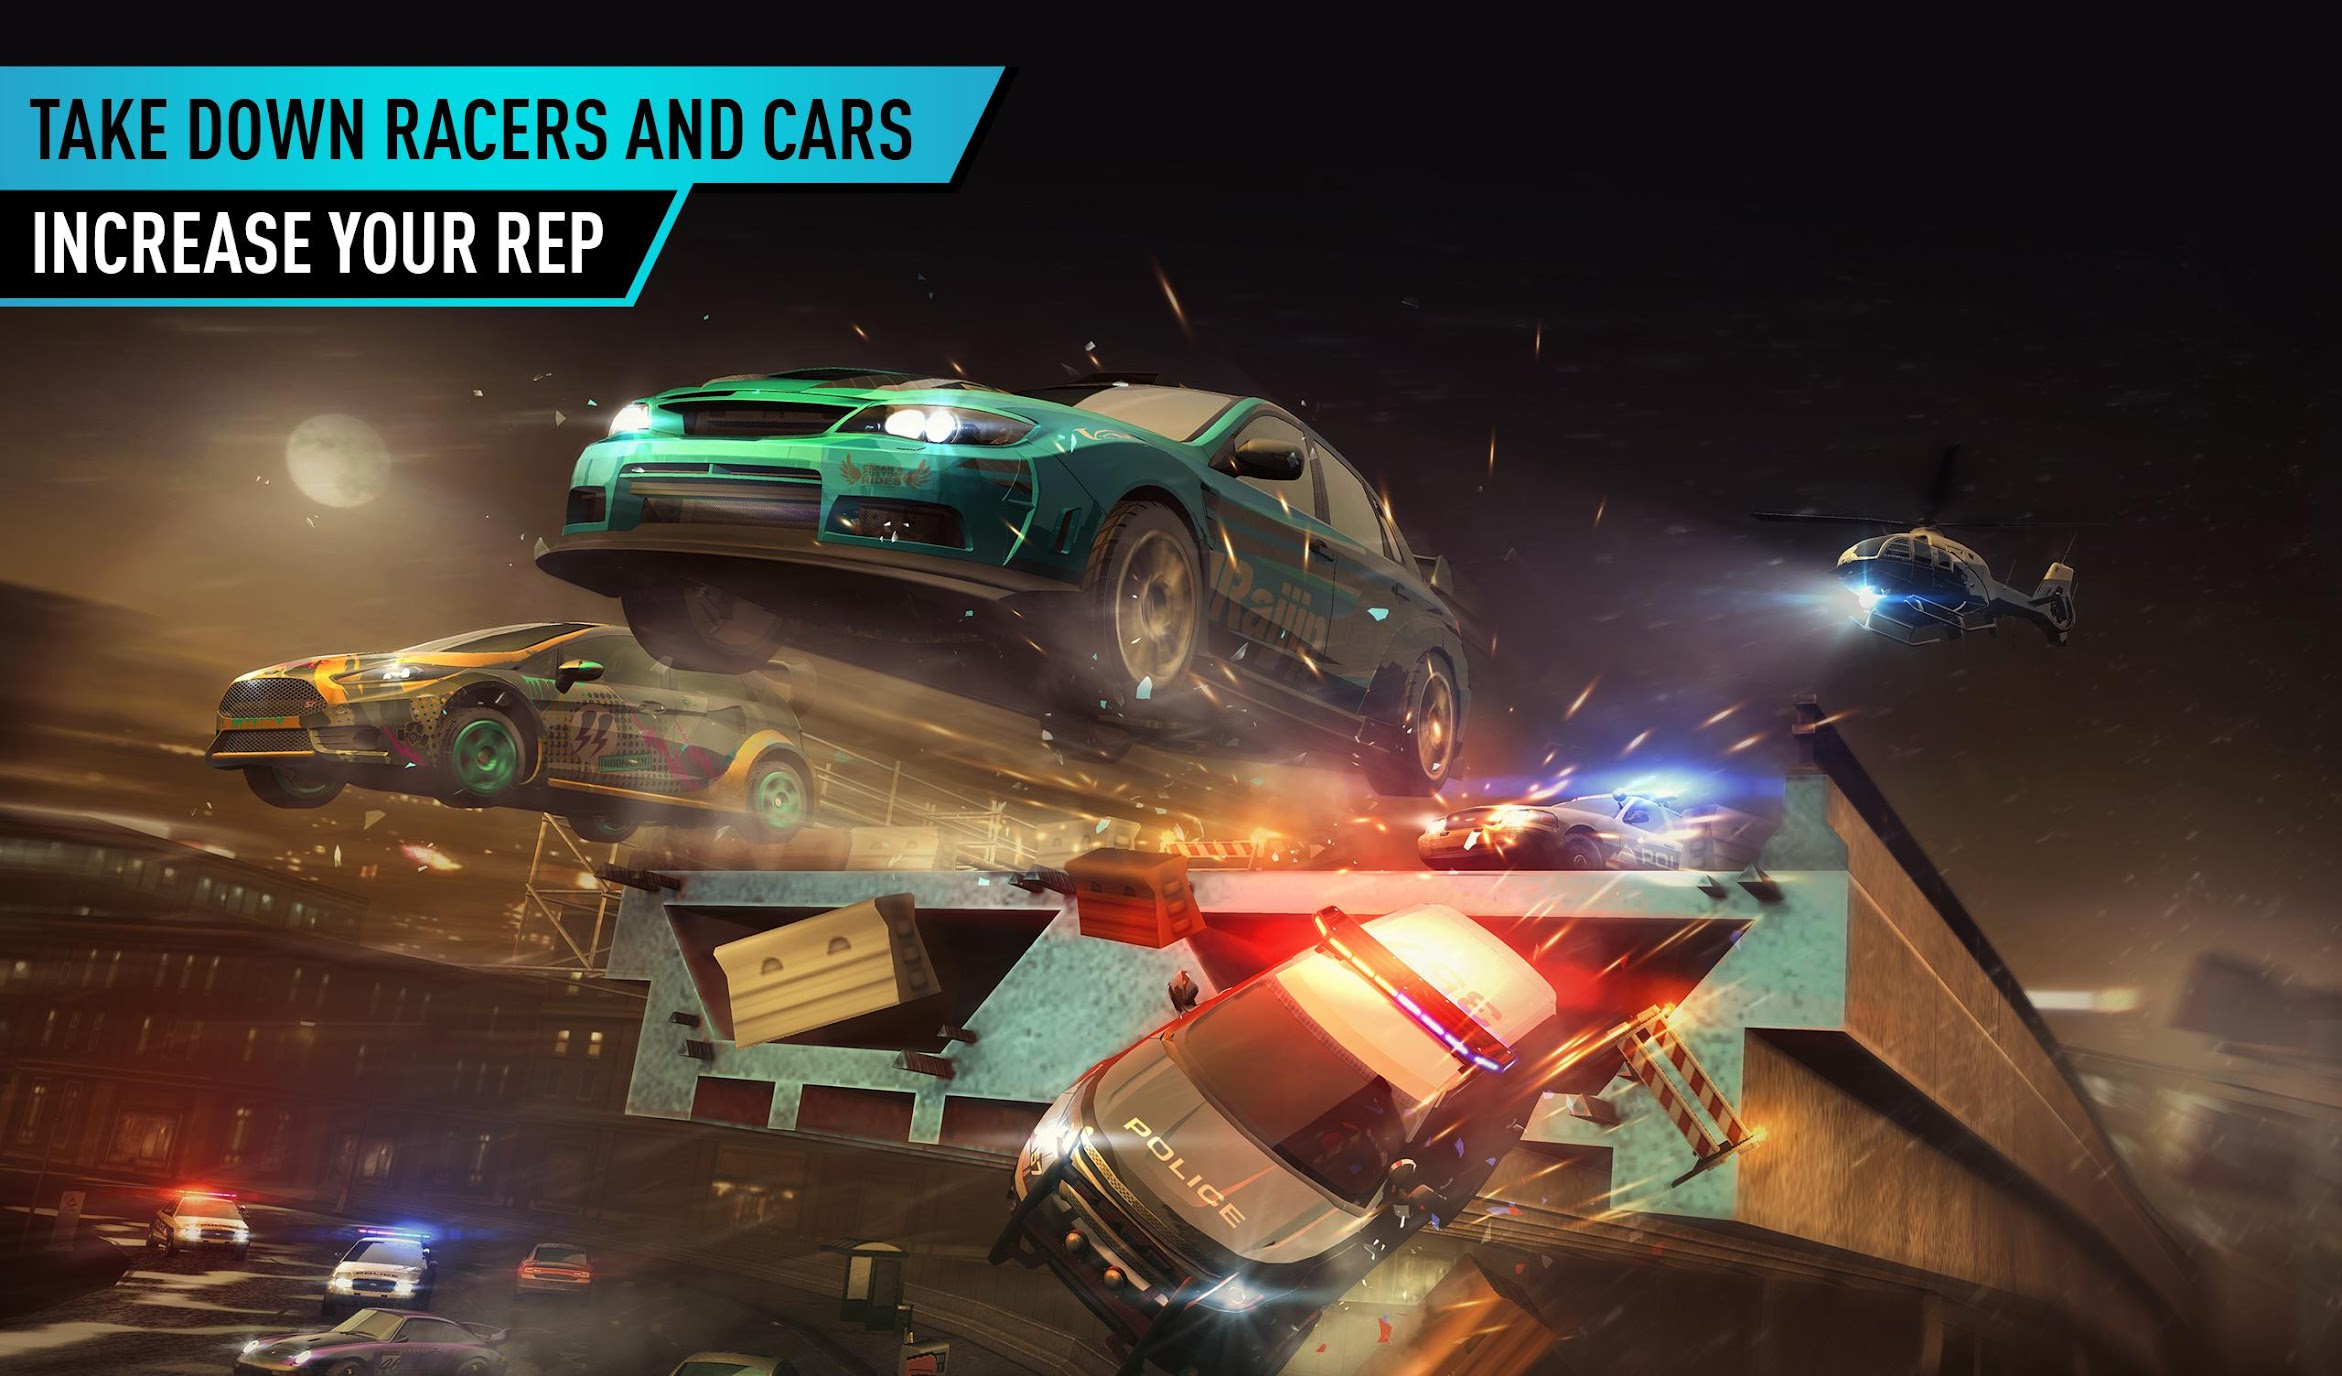 Need for Speed No Limits Mod apk (Unlimited Money/Unlocked All) GPU 6